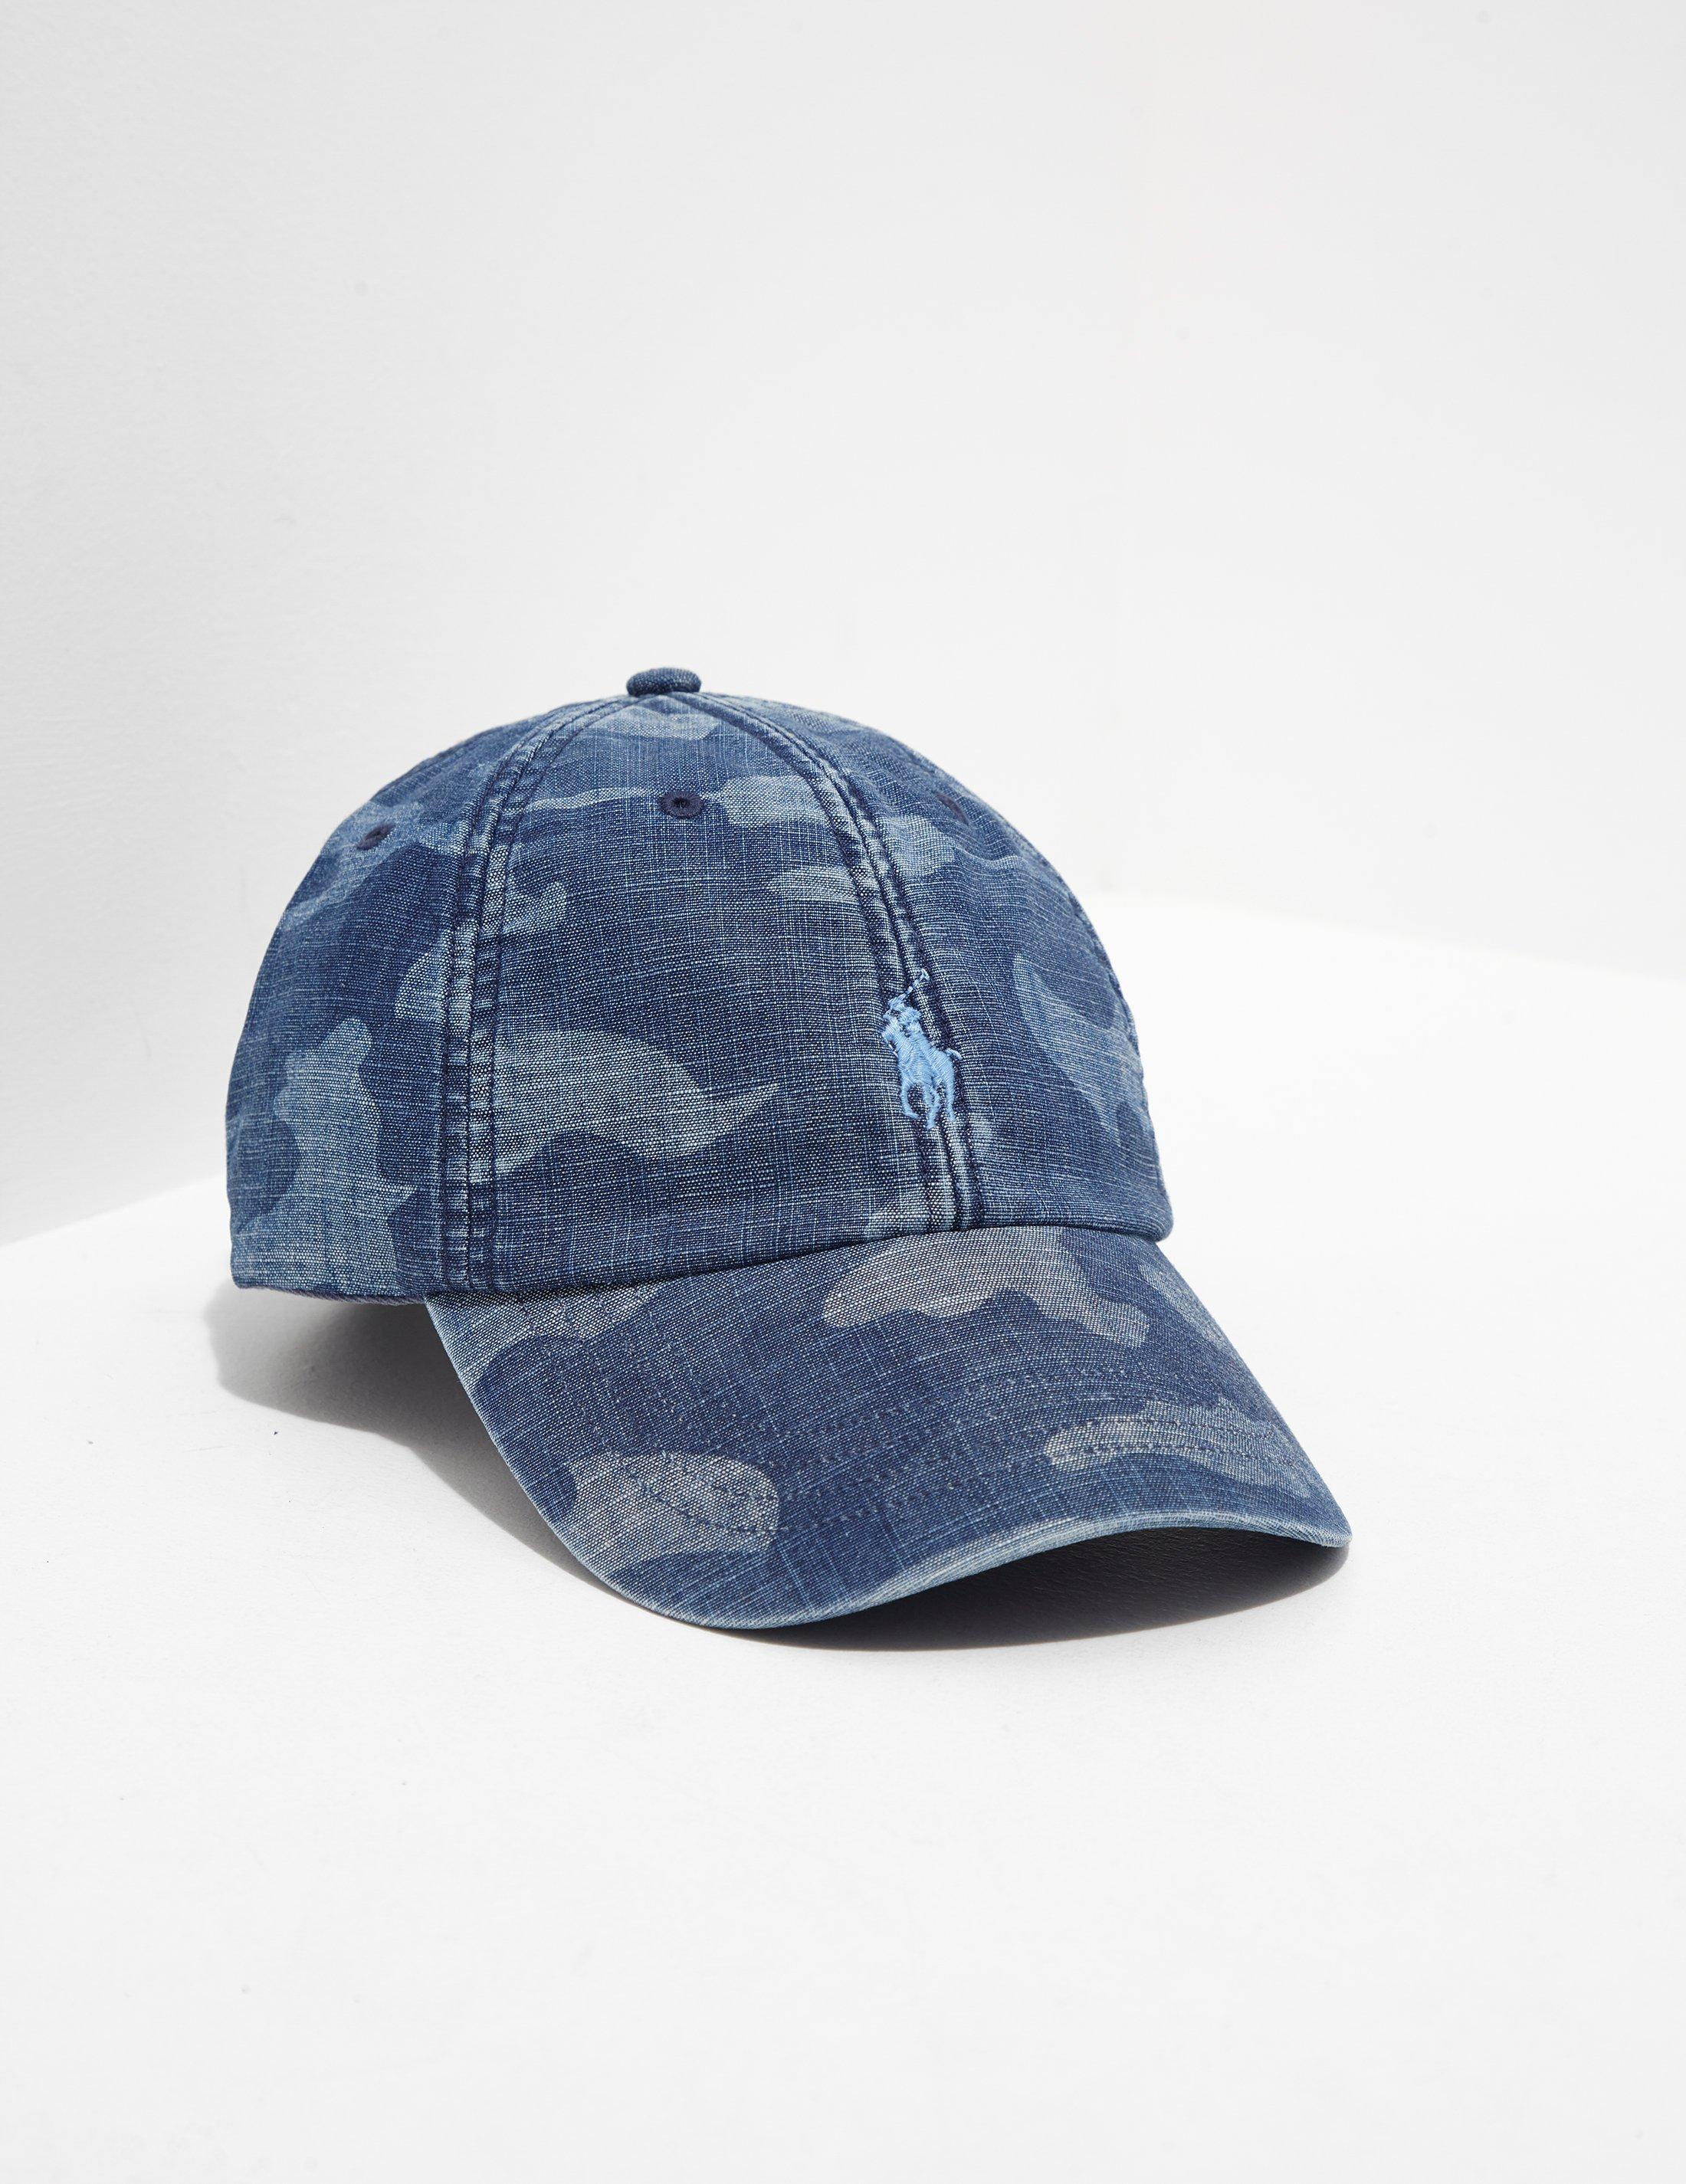 Polo Ralph Lauren Mens Camo Cap - Online Exclusive Blue in Blue for ... 719a2269f24